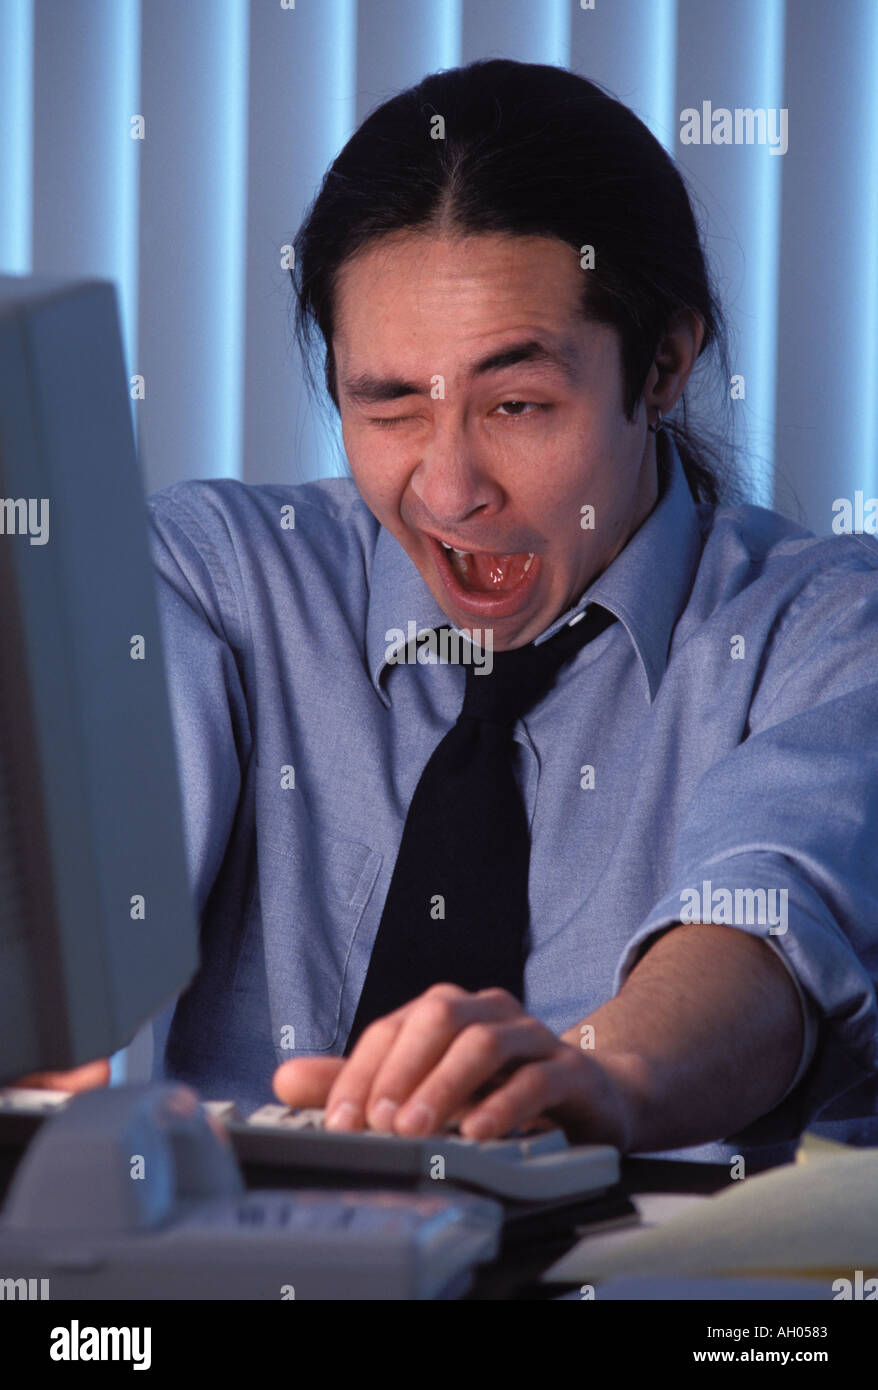 Sleepy Man Working Late at Office - Stock Image